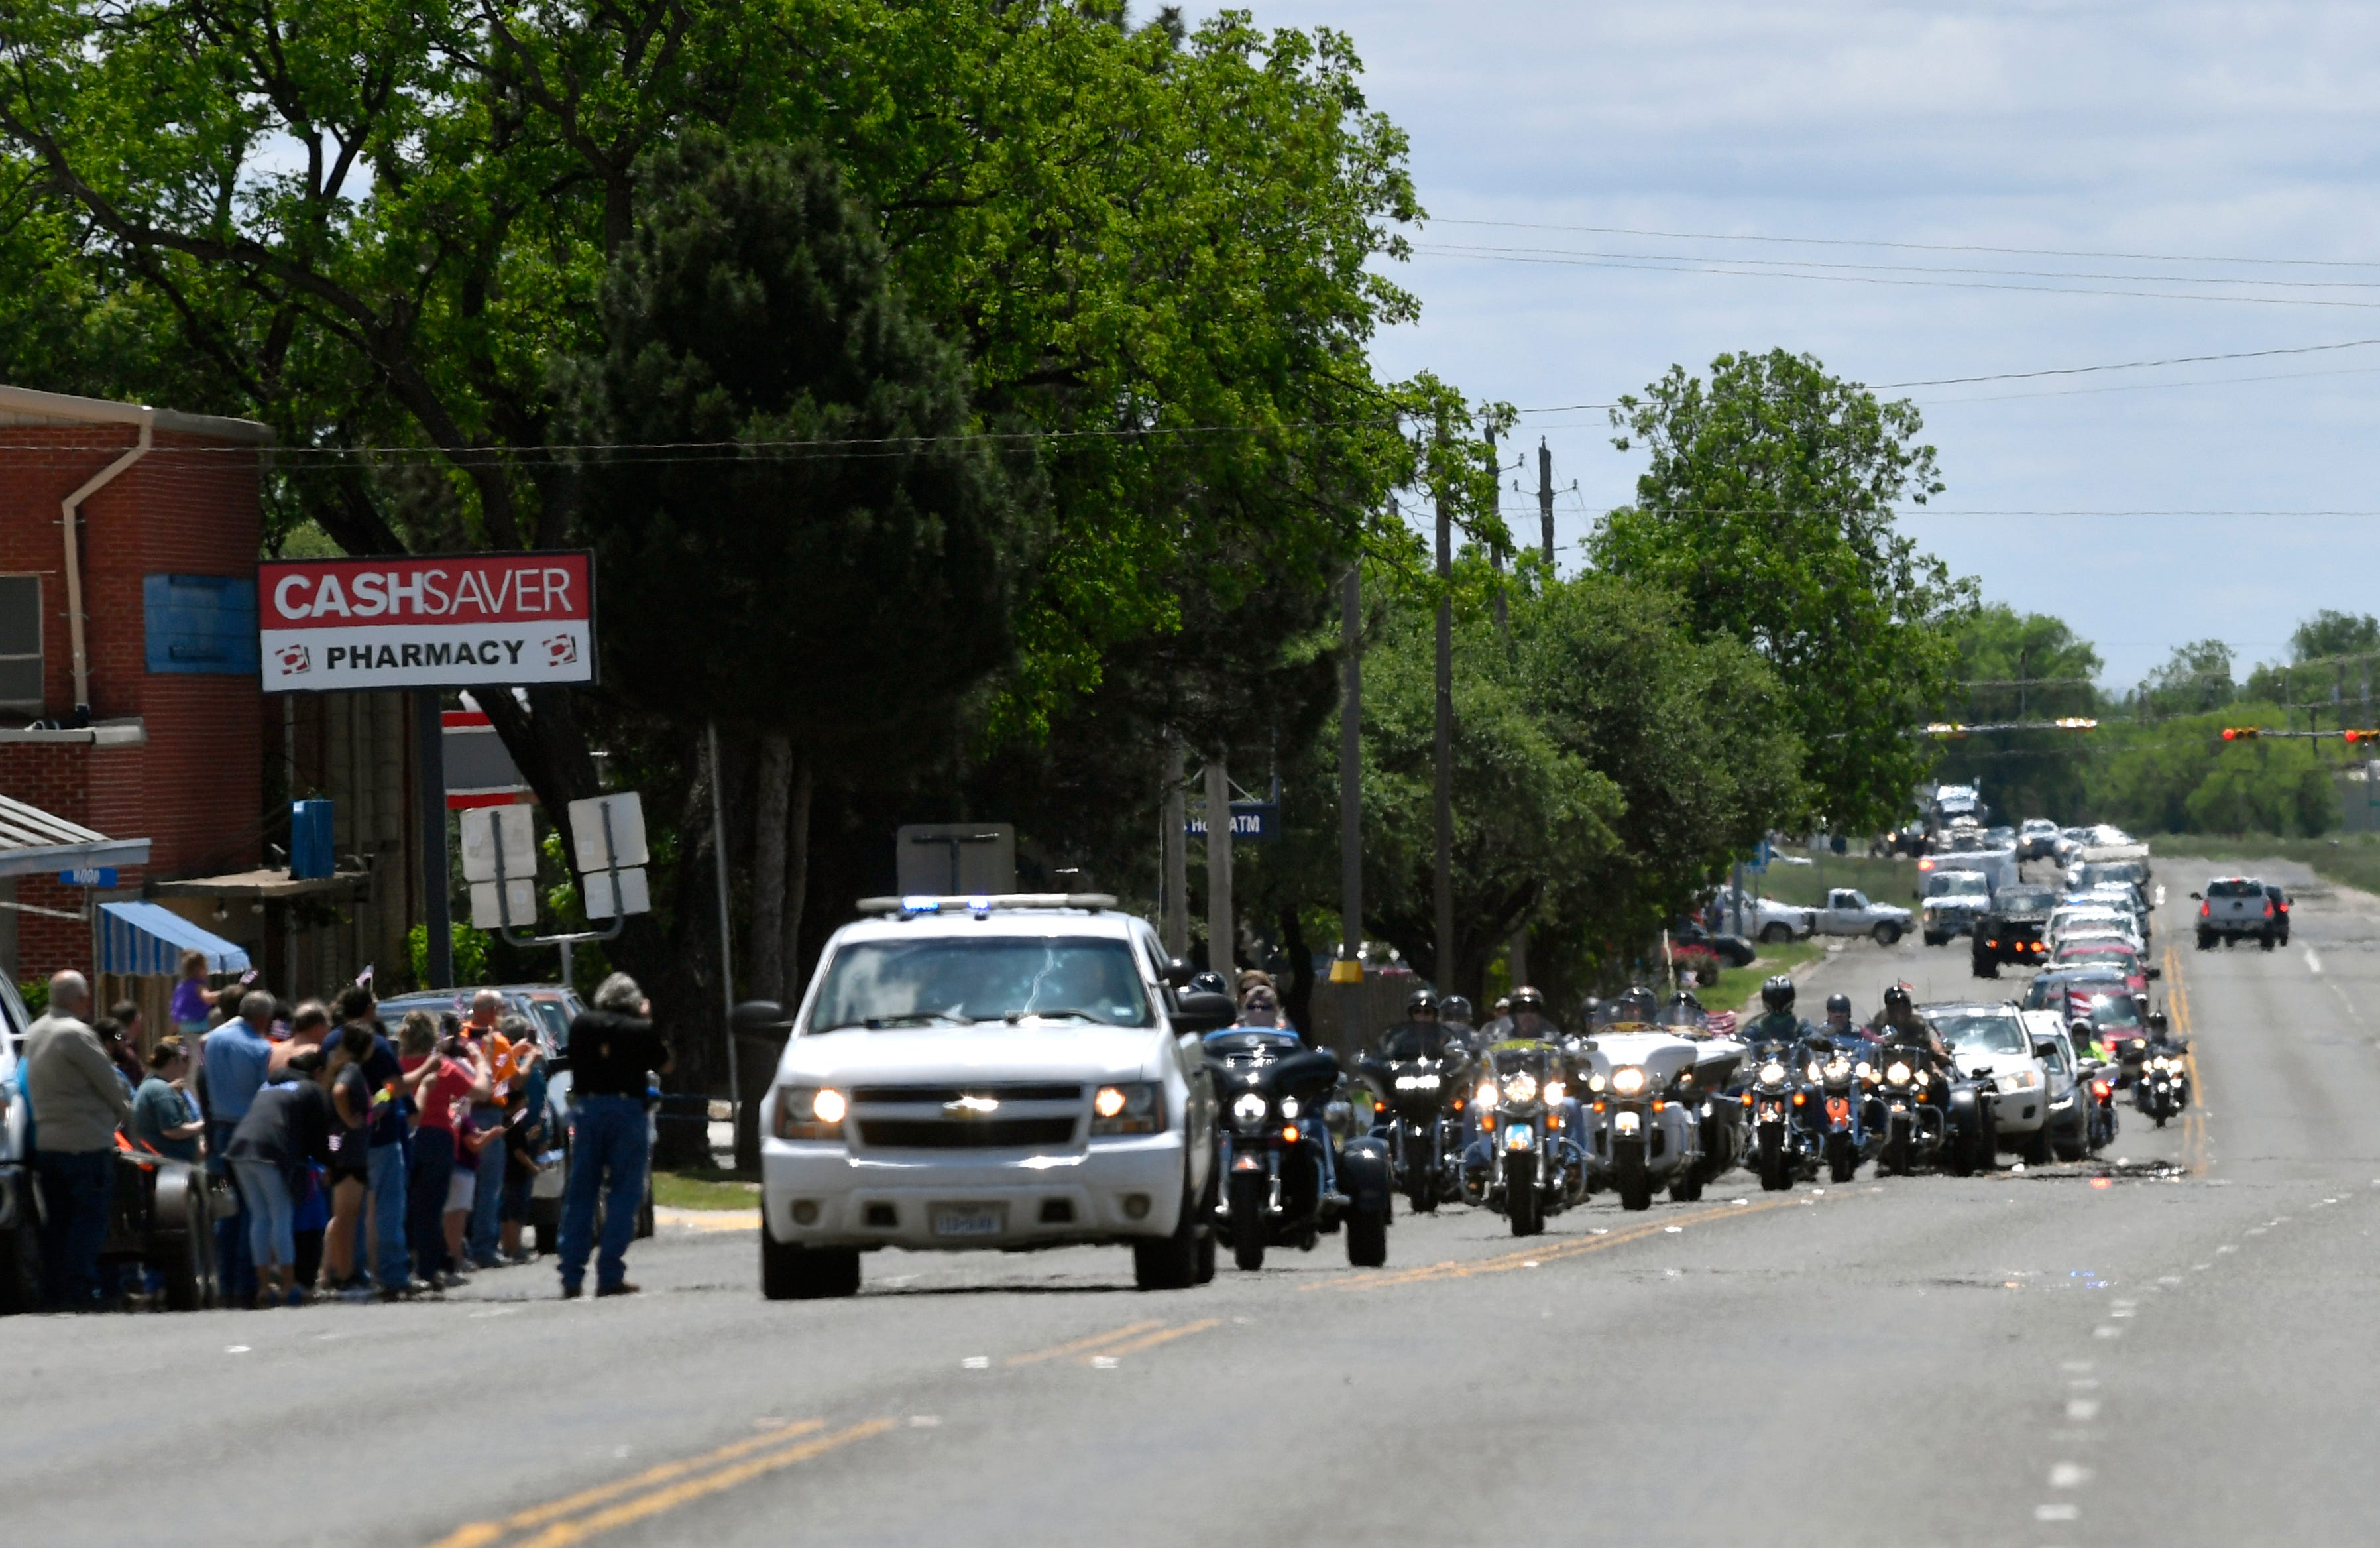 A convoy of Patriot Guard motorcyclists, police officers, veterans and others arrive in Winters, Texas, from Ballinger, Texas, on Saturday, May 4, 2019. They were escorting the remains of Seaman 1st Class Hale McKissack who died at Pearl Harbor on Dec. 7, 1941, but whose remains were only recently identified.